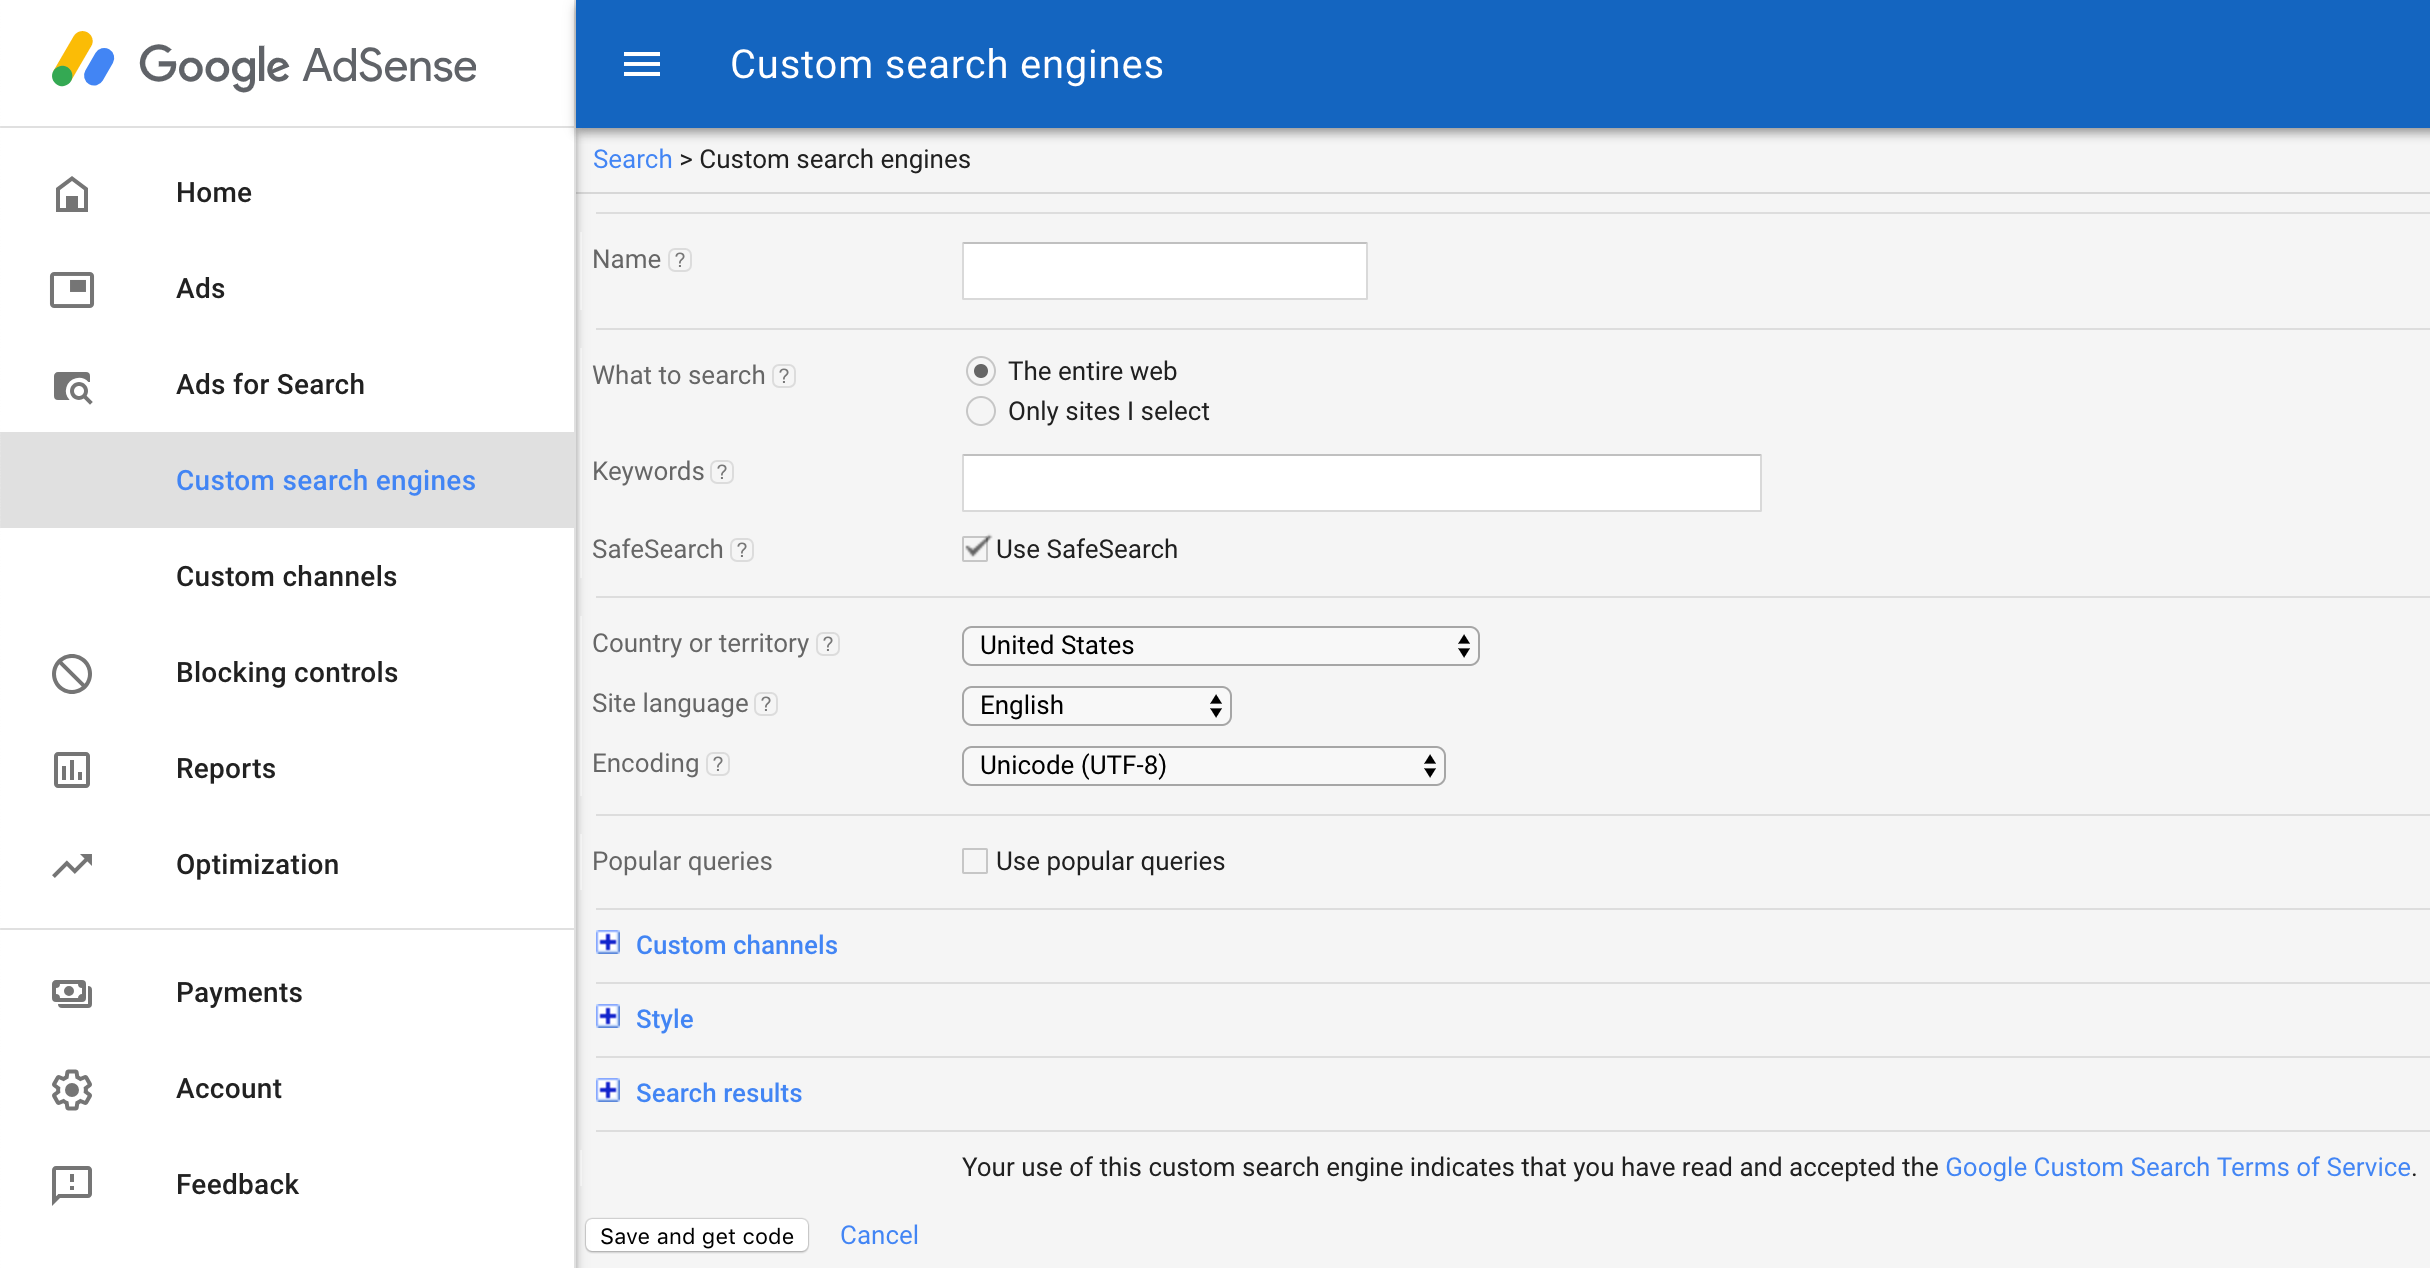 Add custom search engine